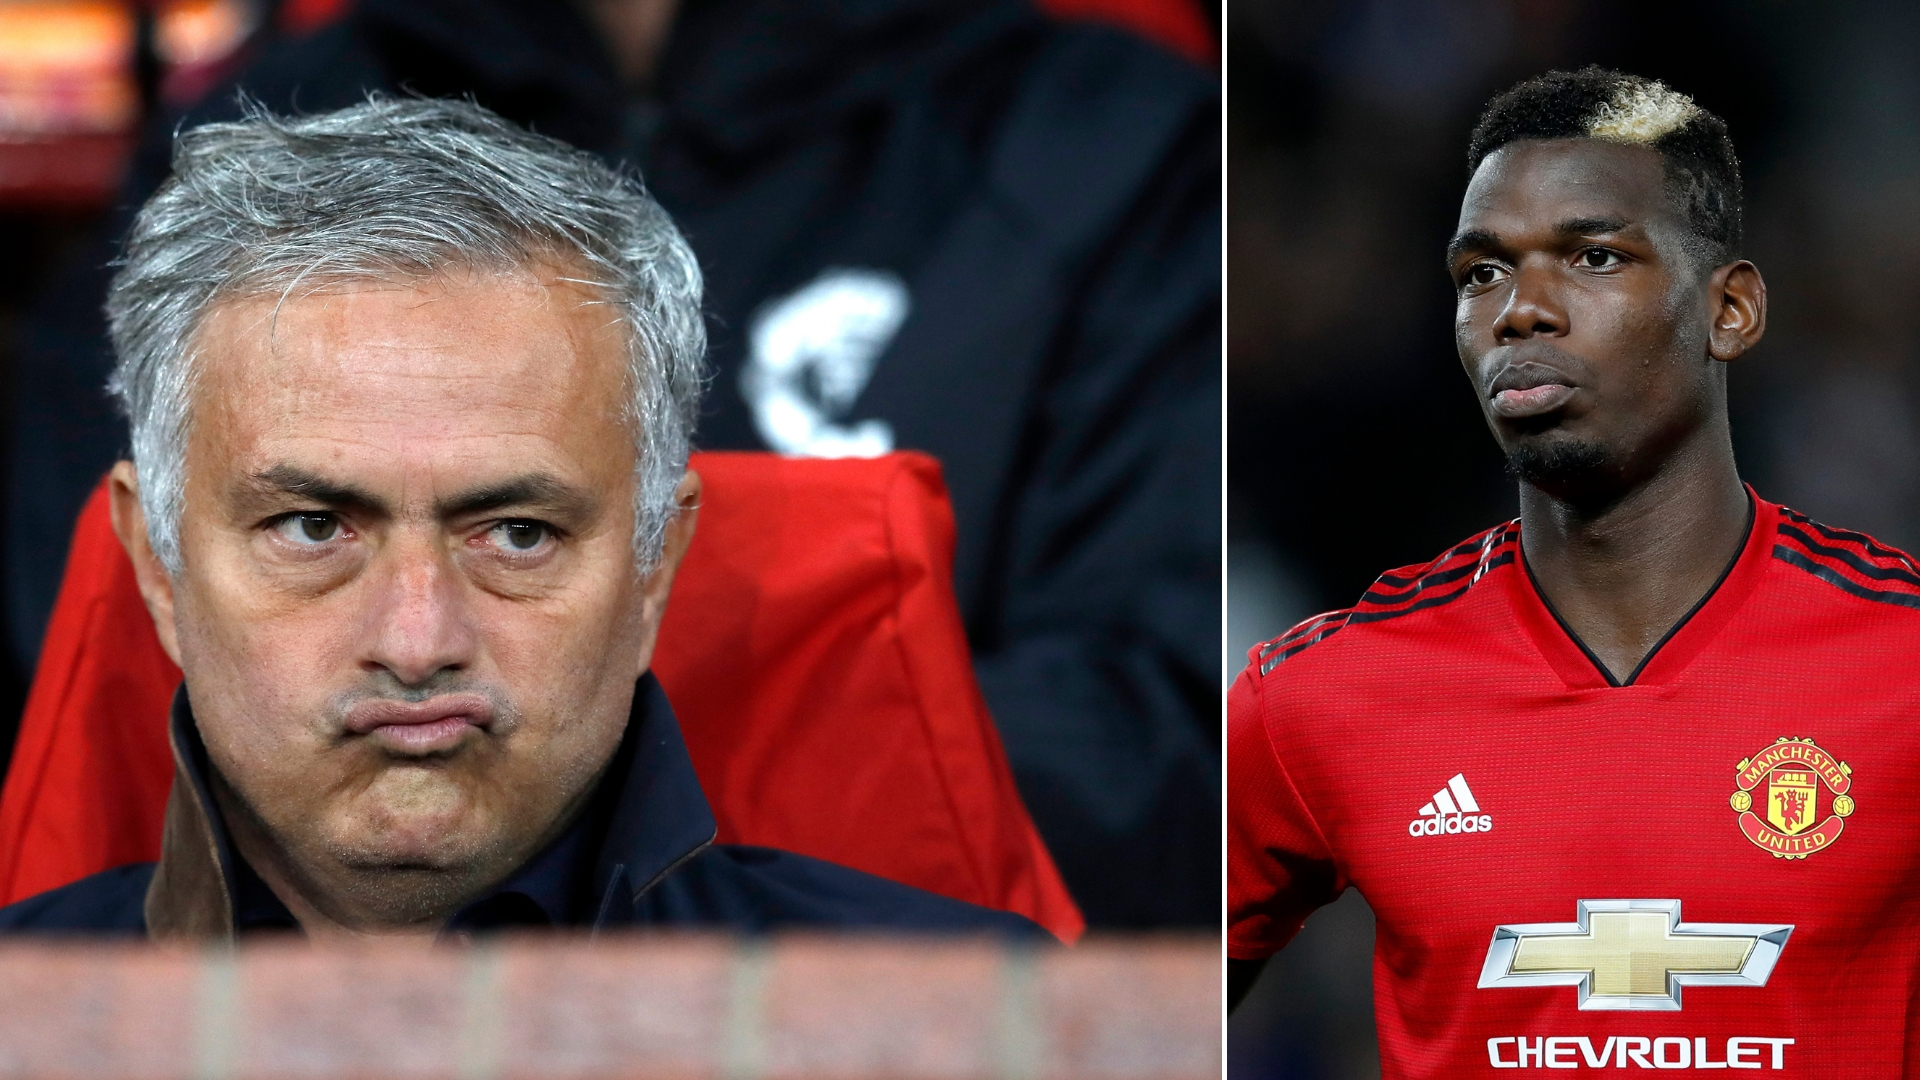 Pogba's Original Thoughts Of Working With Mourinho Make For An Awkward Situation Now